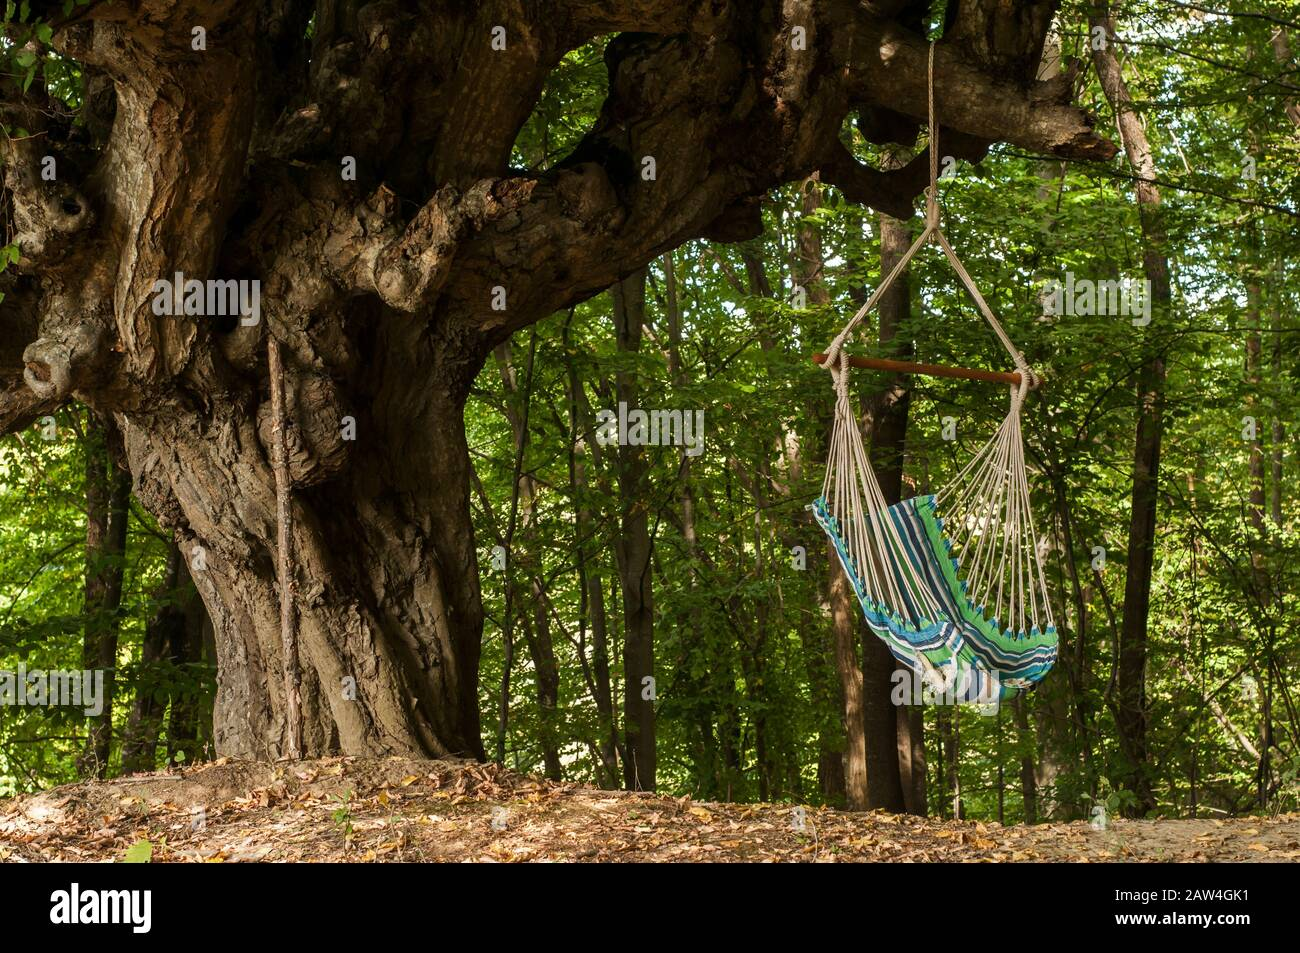 Hammock Hanging Swing Cradle Chair Hung On Old Big Tree Branch Stock Photo Alamy